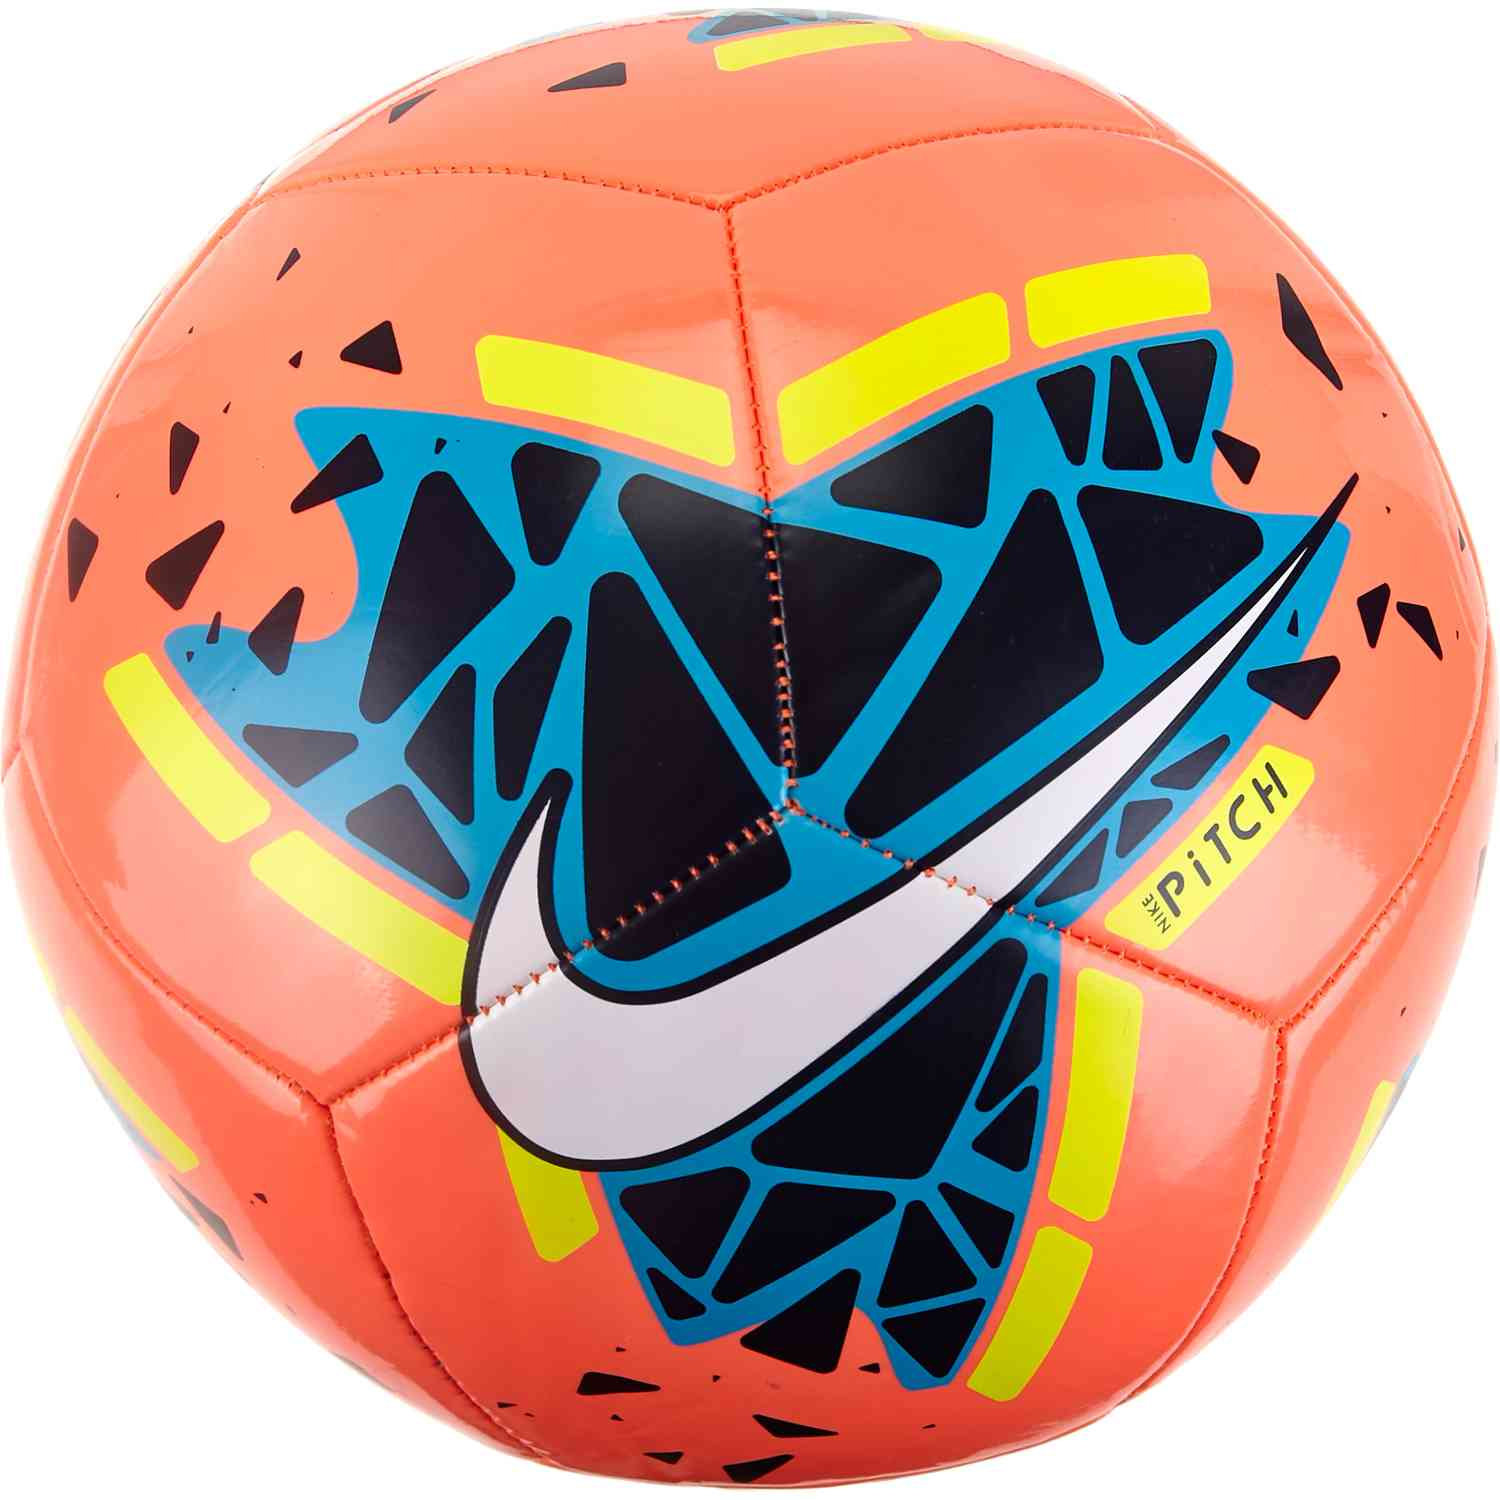 new specials performance sportswear preview of Nike Pitch Training Soccer Ball - Bright Mango/Obsidian/Volt ...